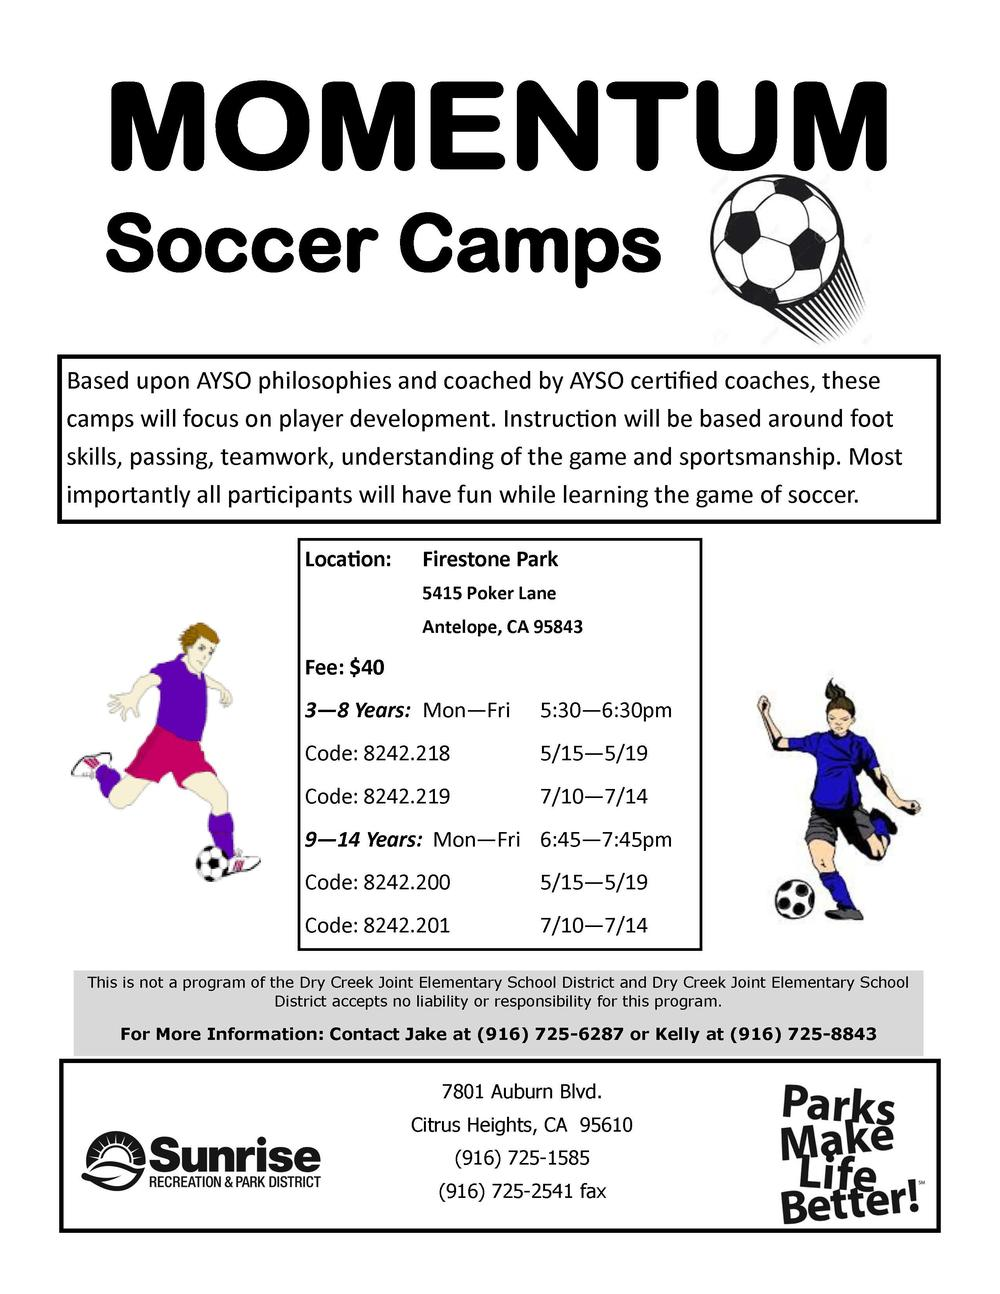 Sunrise Recreation and Park Momentum Soccer Camp Flyer